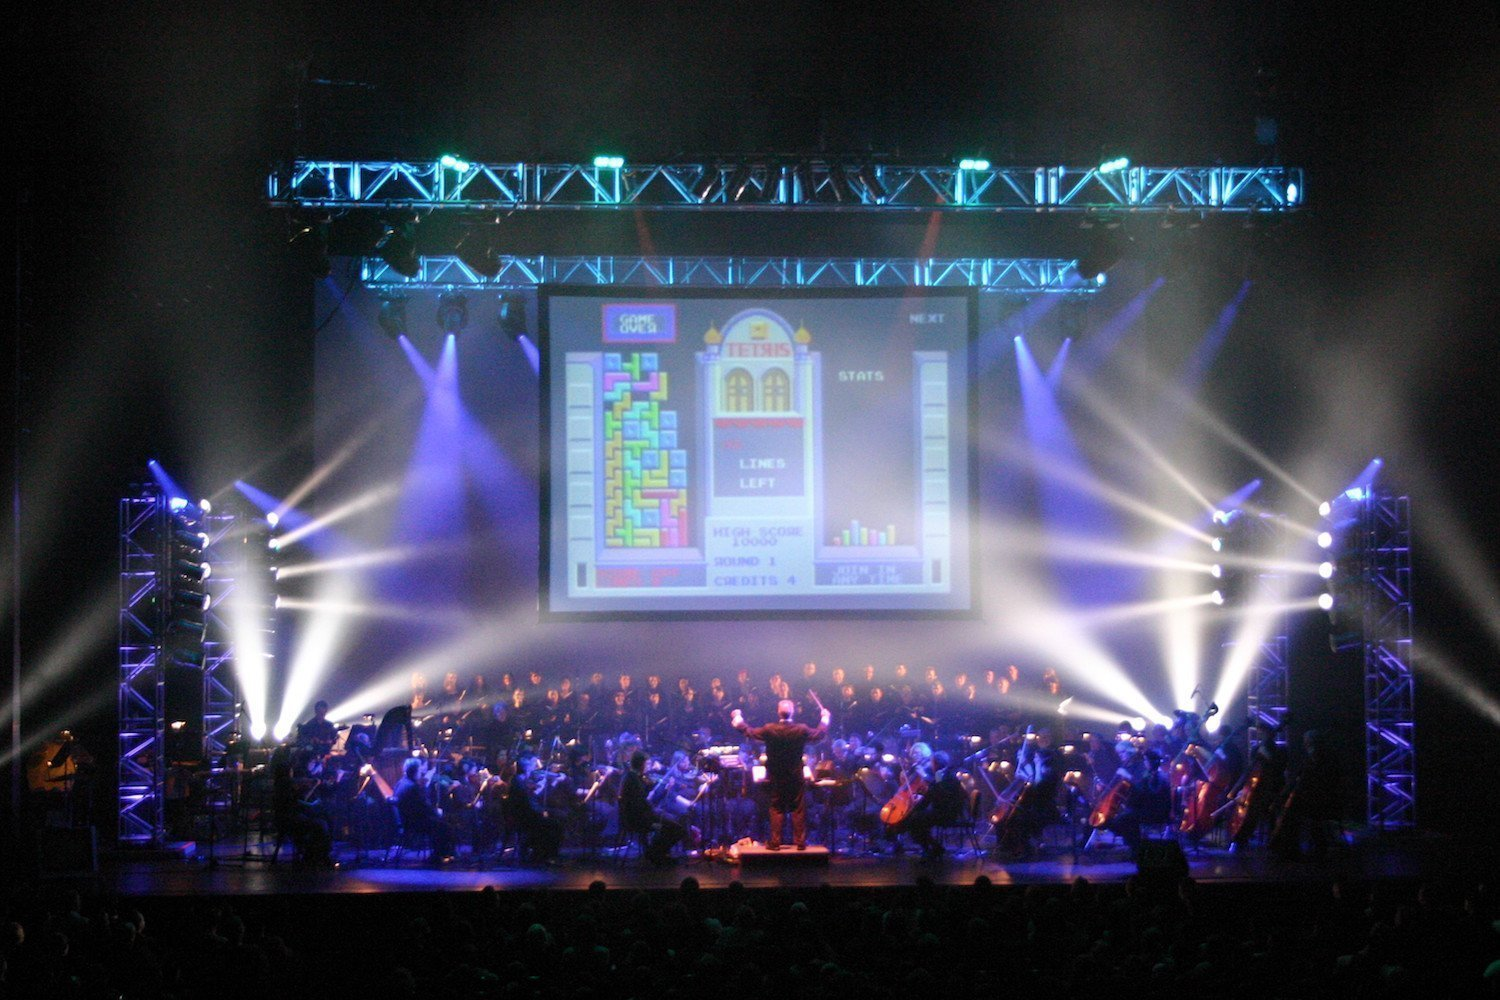 OSV - Video games live